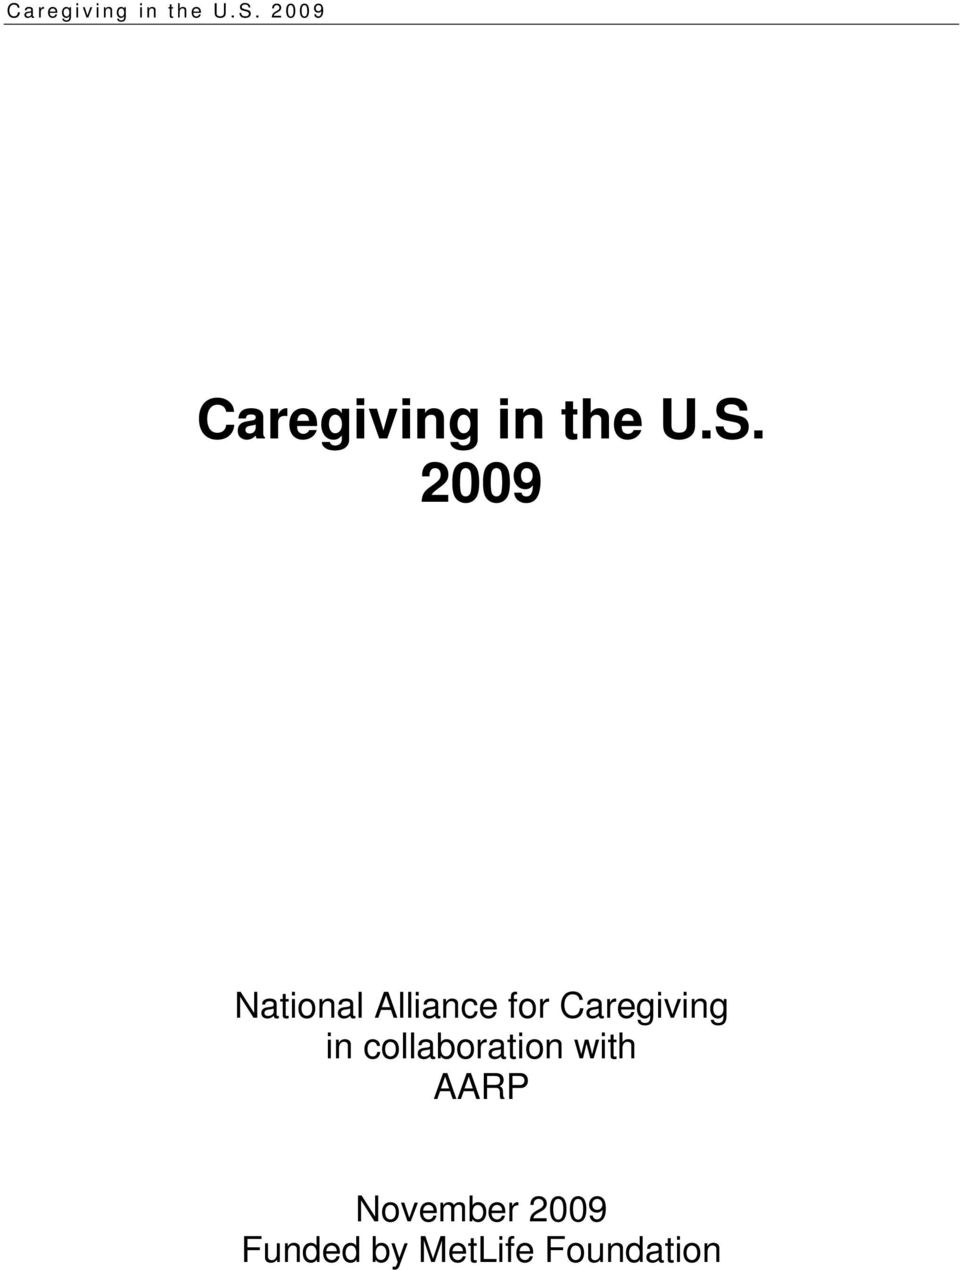 Caregiving in collaboration